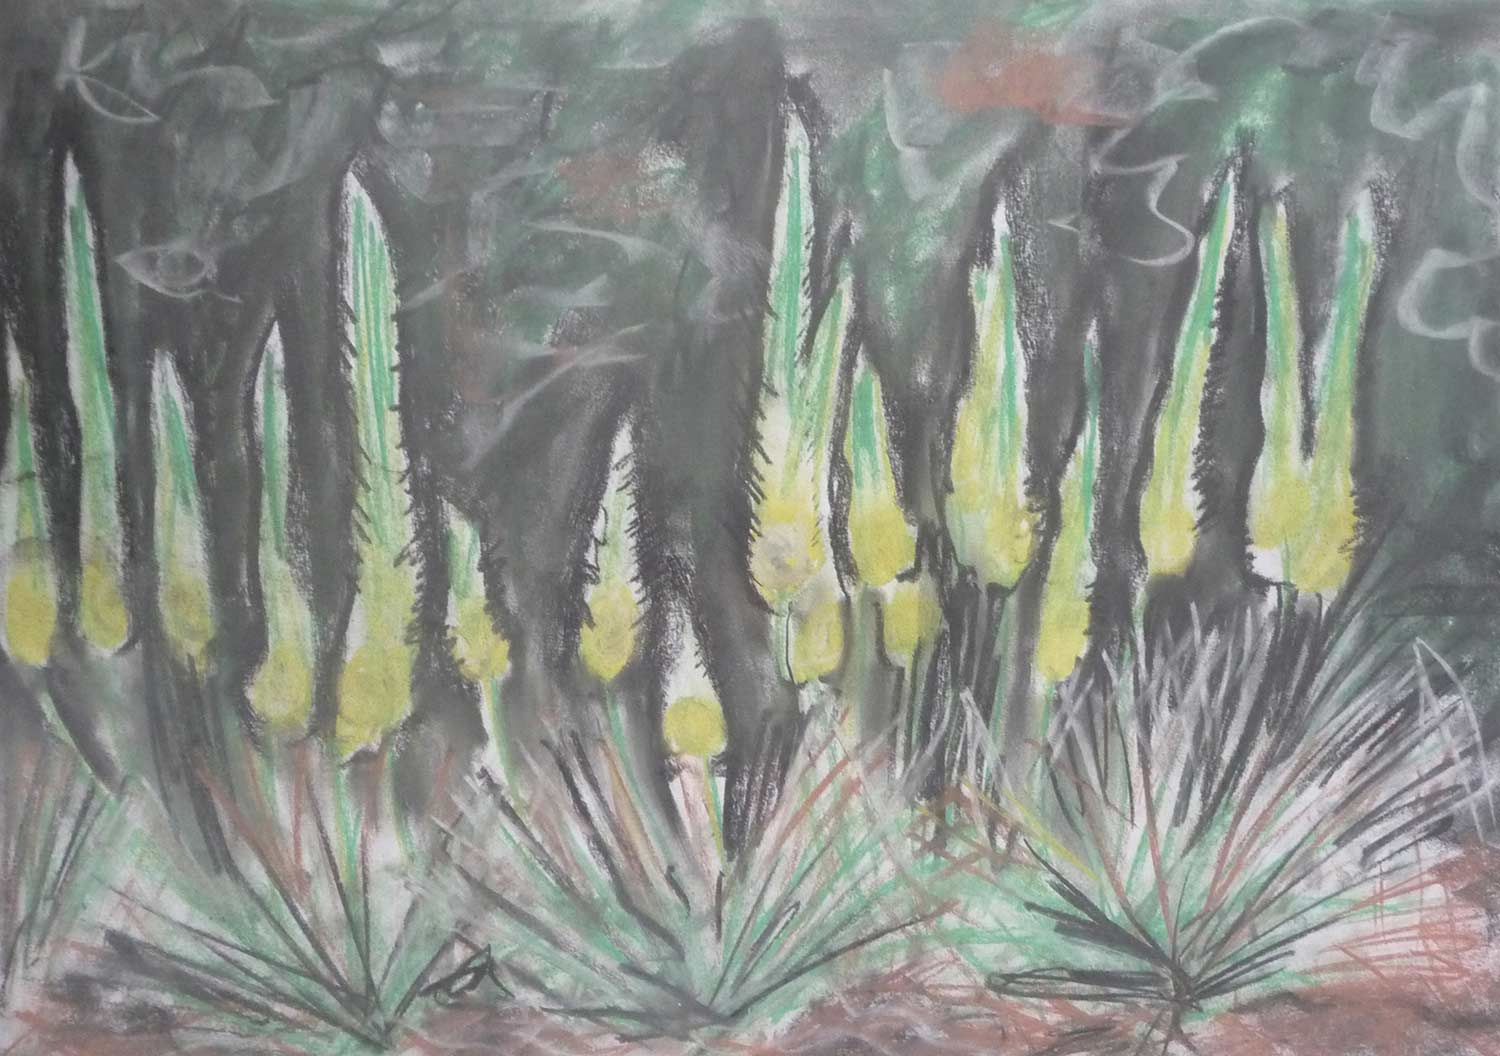 dark-drawing-grass-spikes.jpg